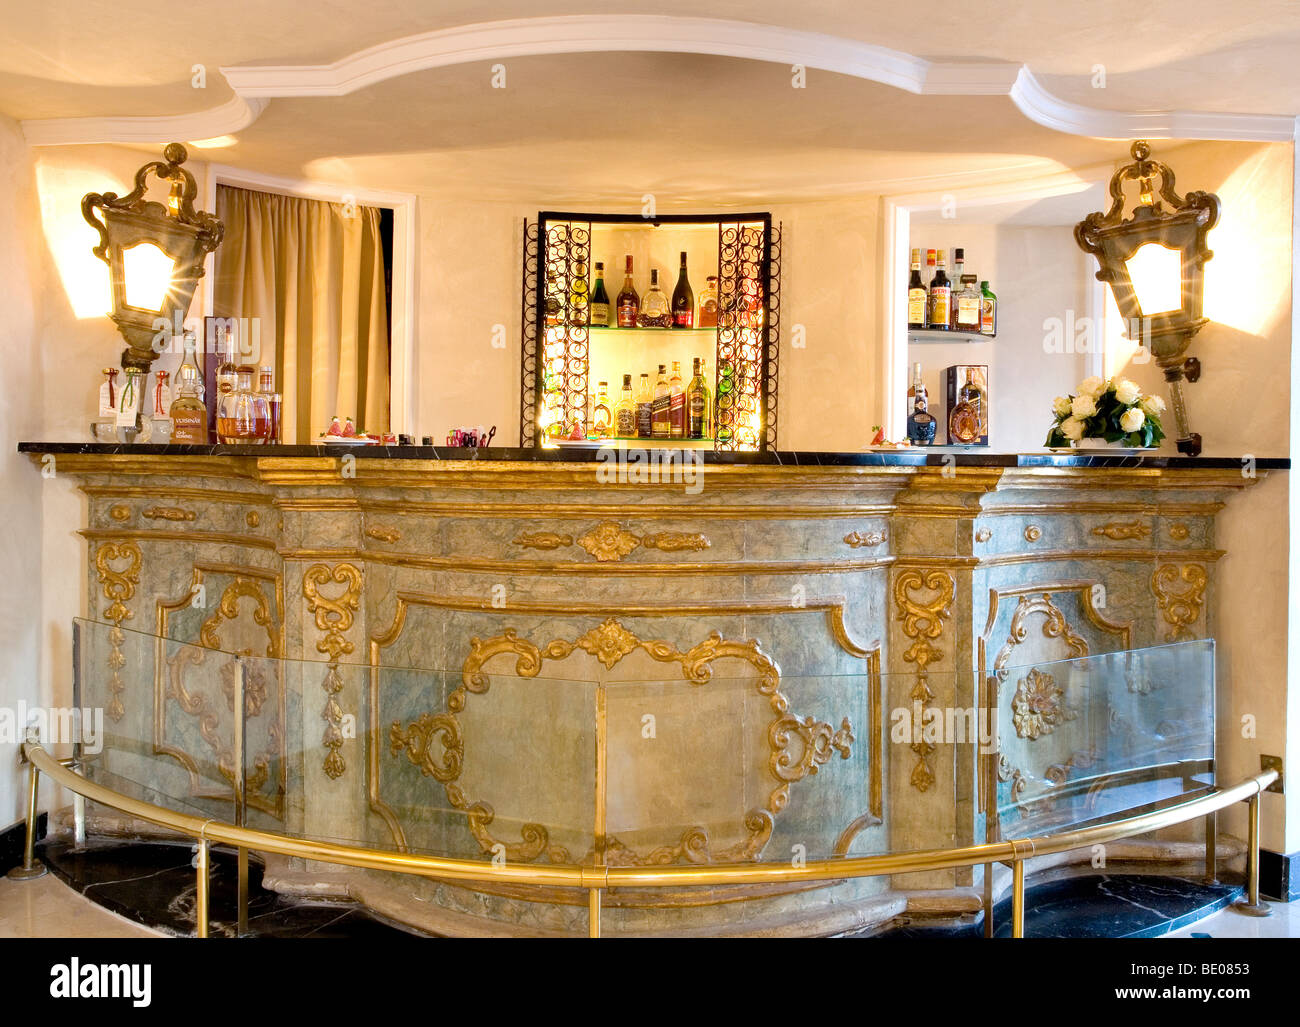 The 5 Star Hotel Punta Tragaras Famous Baroque Style Bar On Isle Of Capri Italy